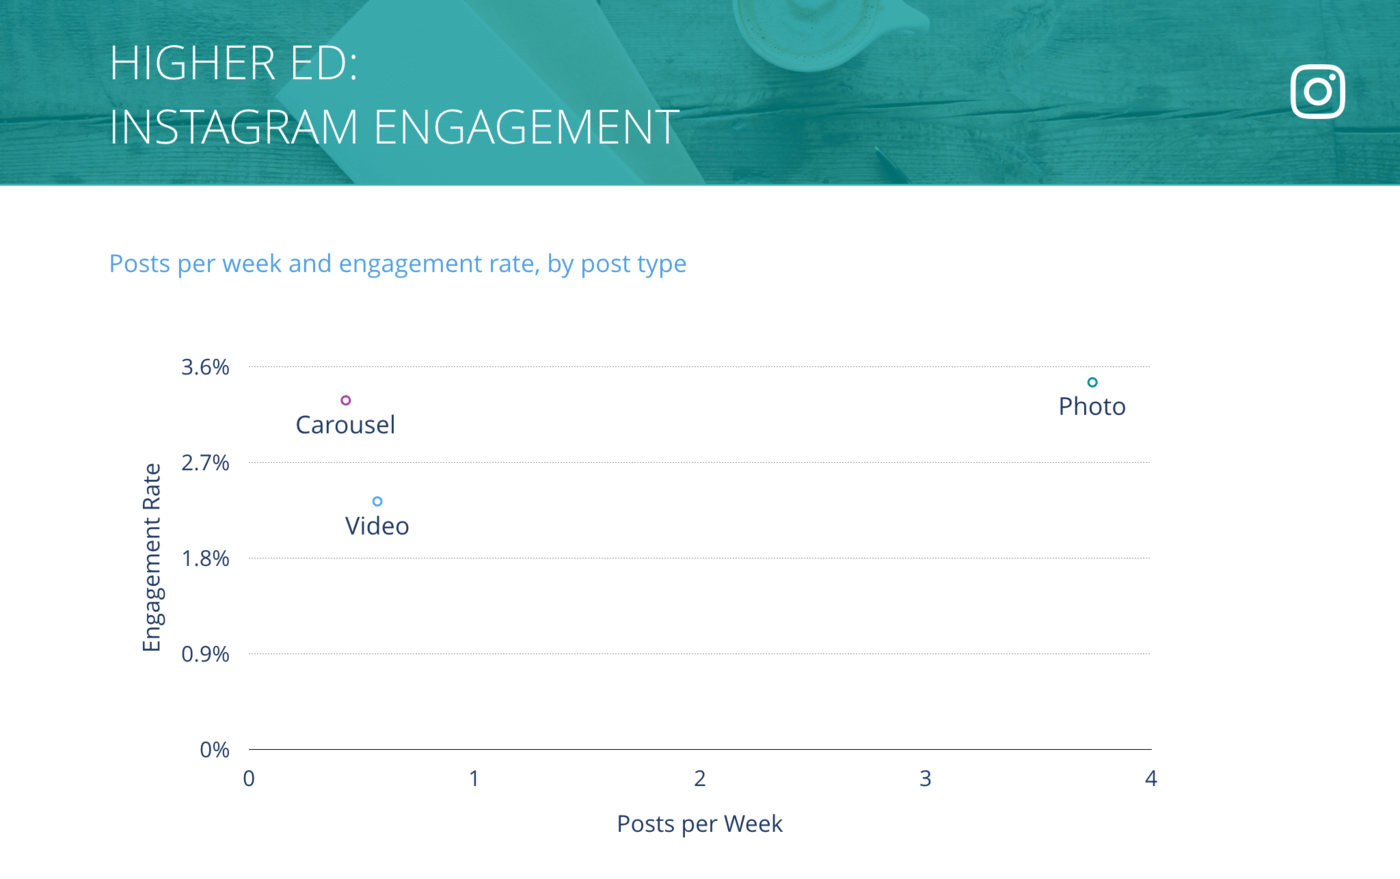 slide for Instagram Posts per Week vs. Engagement Rate per Post, Higher Ed